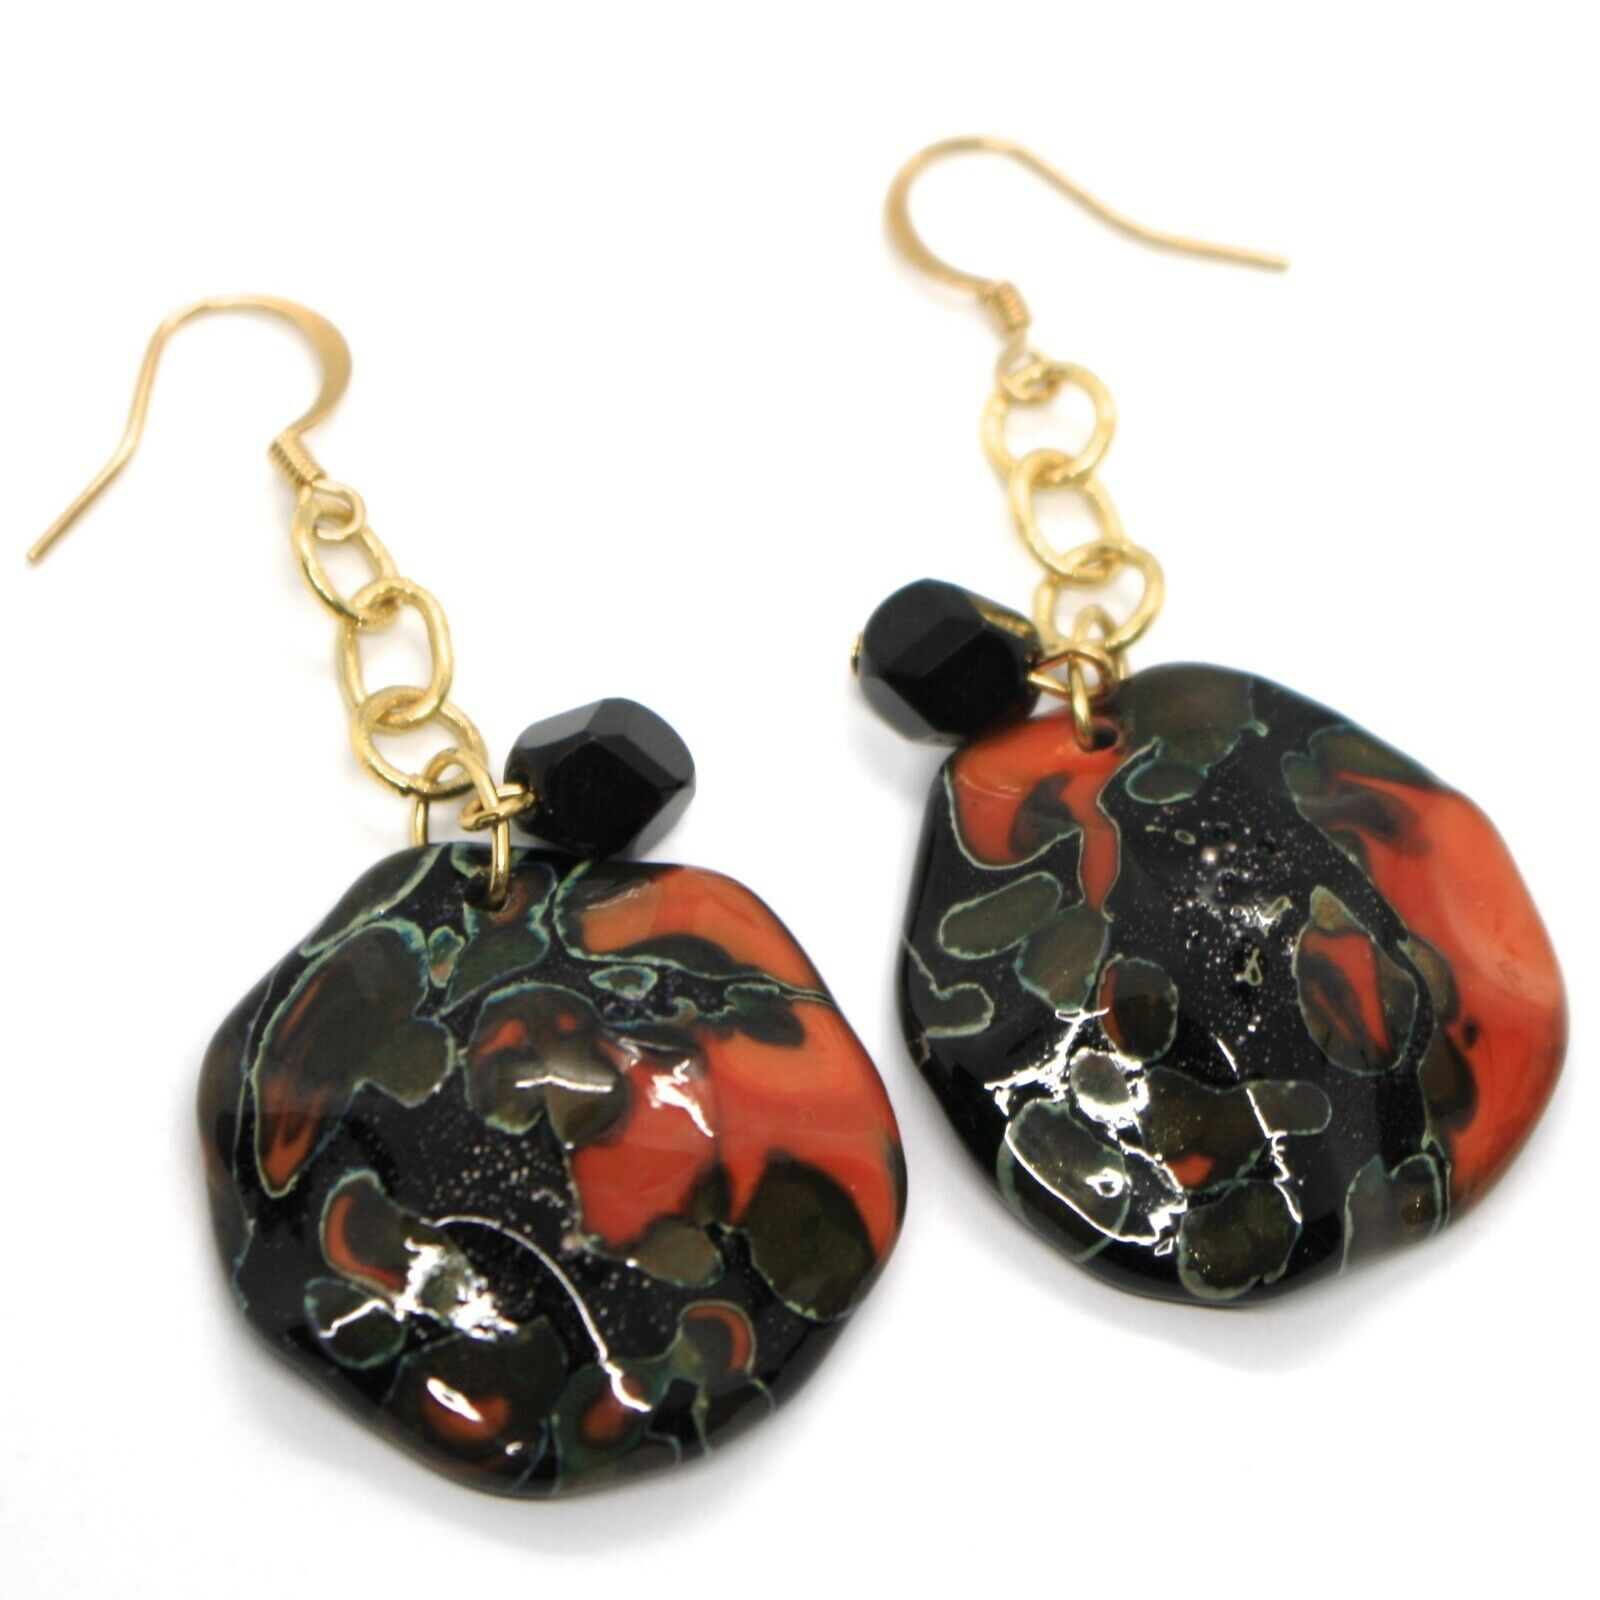 Earrings Antica Murrina Venezia, Hanging, Discs Wavy, Red Black, 6 CM